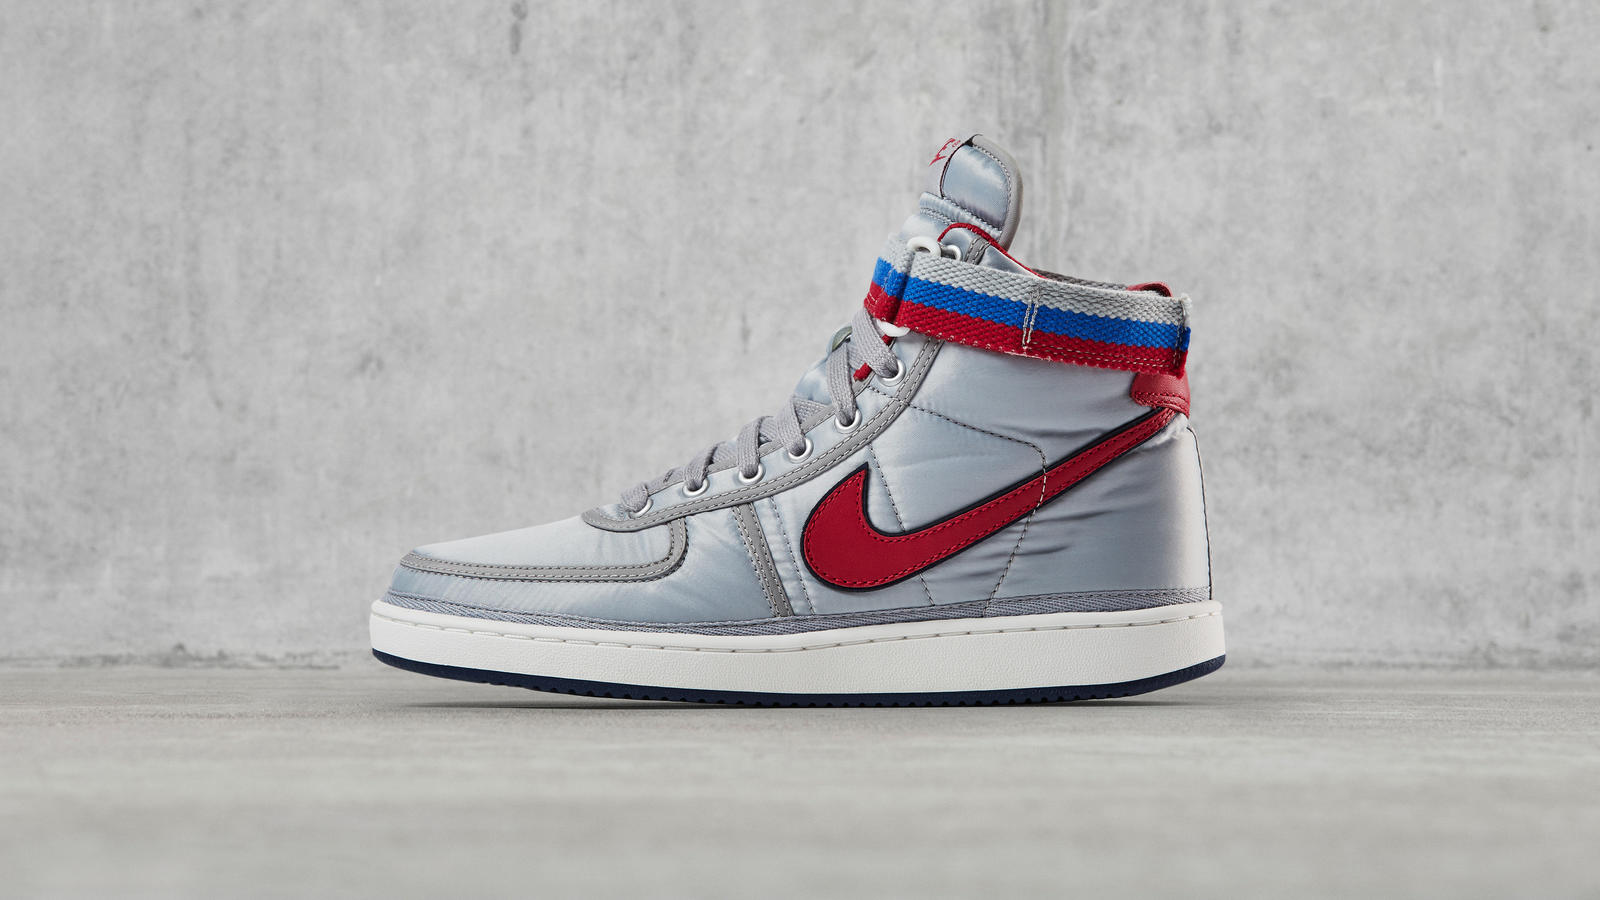 Nike Vandal High Supreme 2